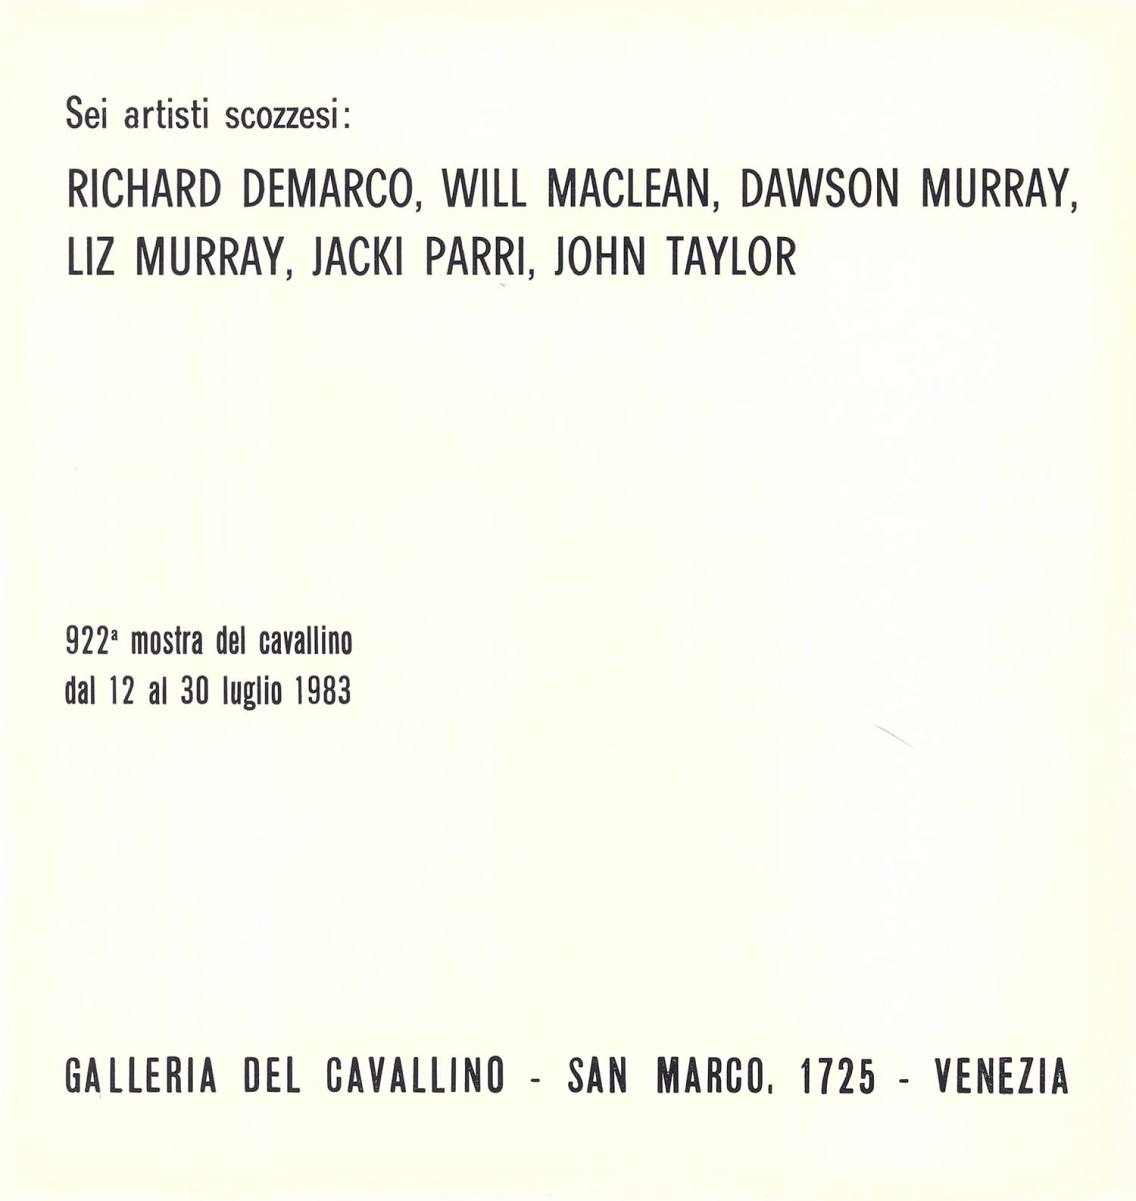 12 - 30 July 1983. Exhibition catalogue (cover). Sei Artisti Scozzesi (Six Scottish Artists): Richard Demarco, Will Maclean, Dawson Murray, Liz Murray, Jacki Parry, John Taylor, exhibition at Galleria del Cavallino, Venice, Italy